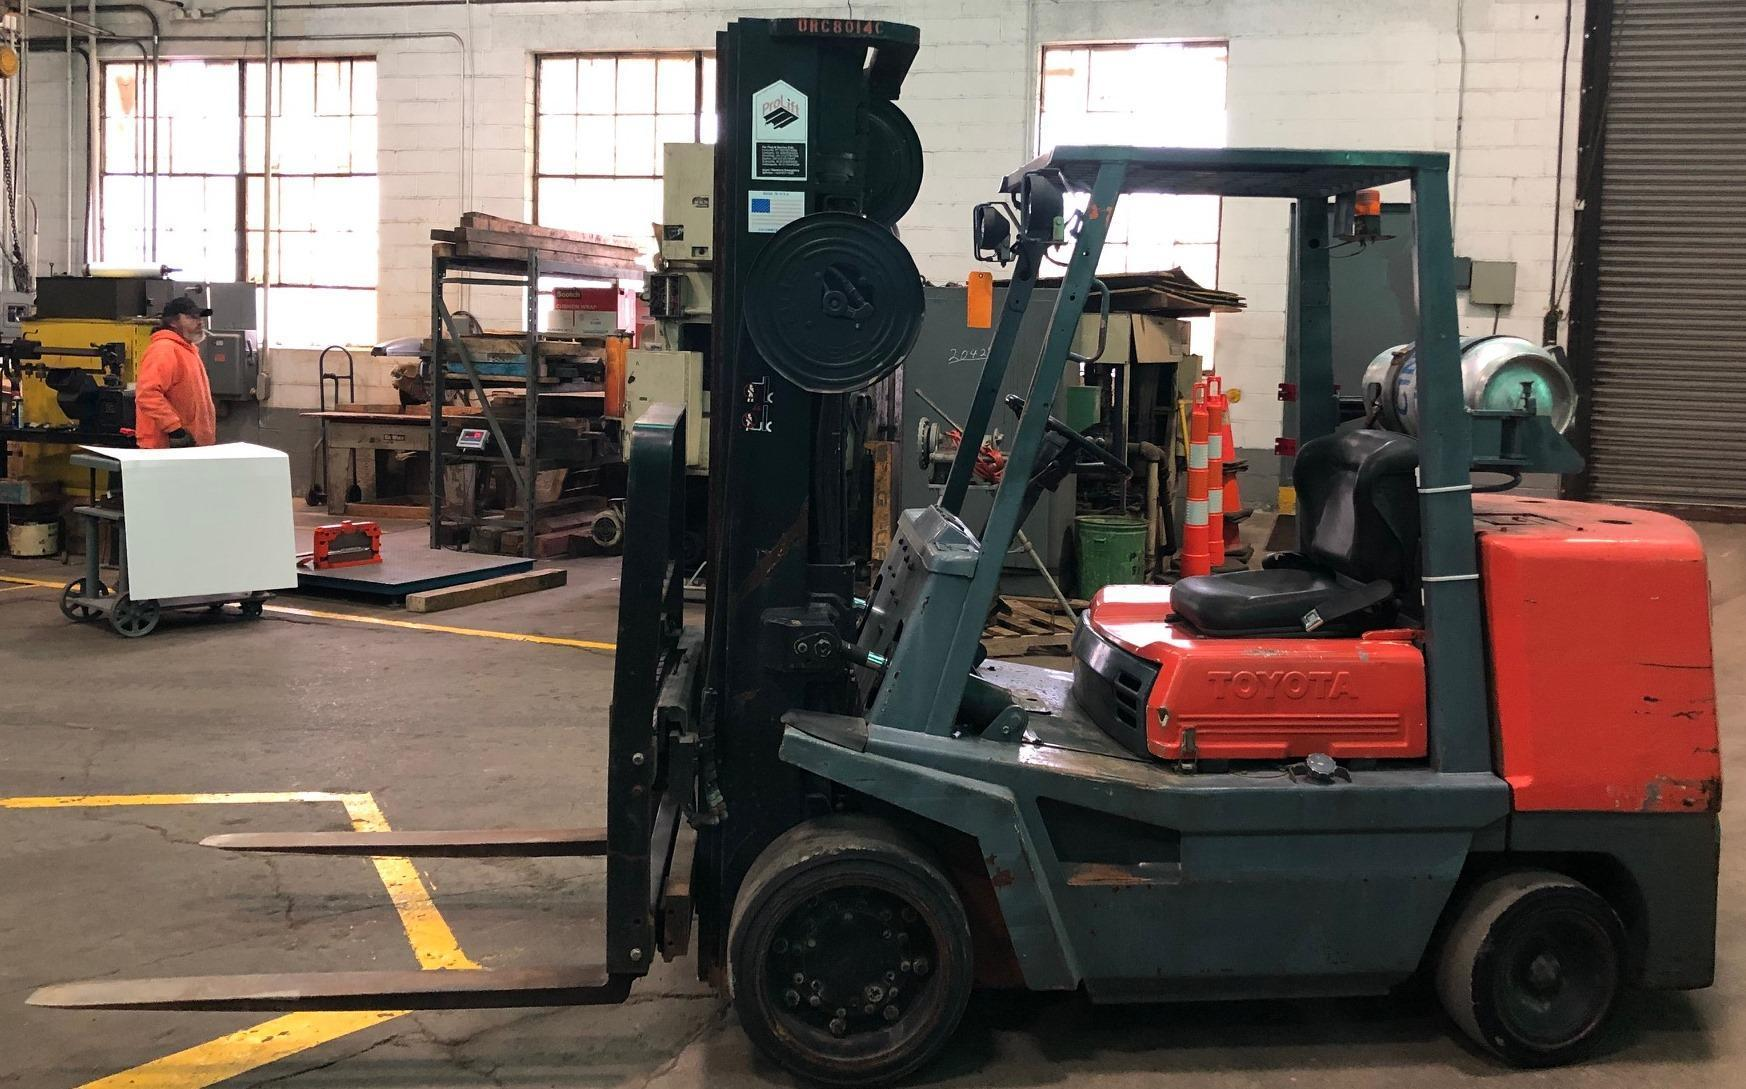 9000 Lb. Toyota Forklift No. FGC45, Hard Tires, LP, Triple Stage, Side Shift